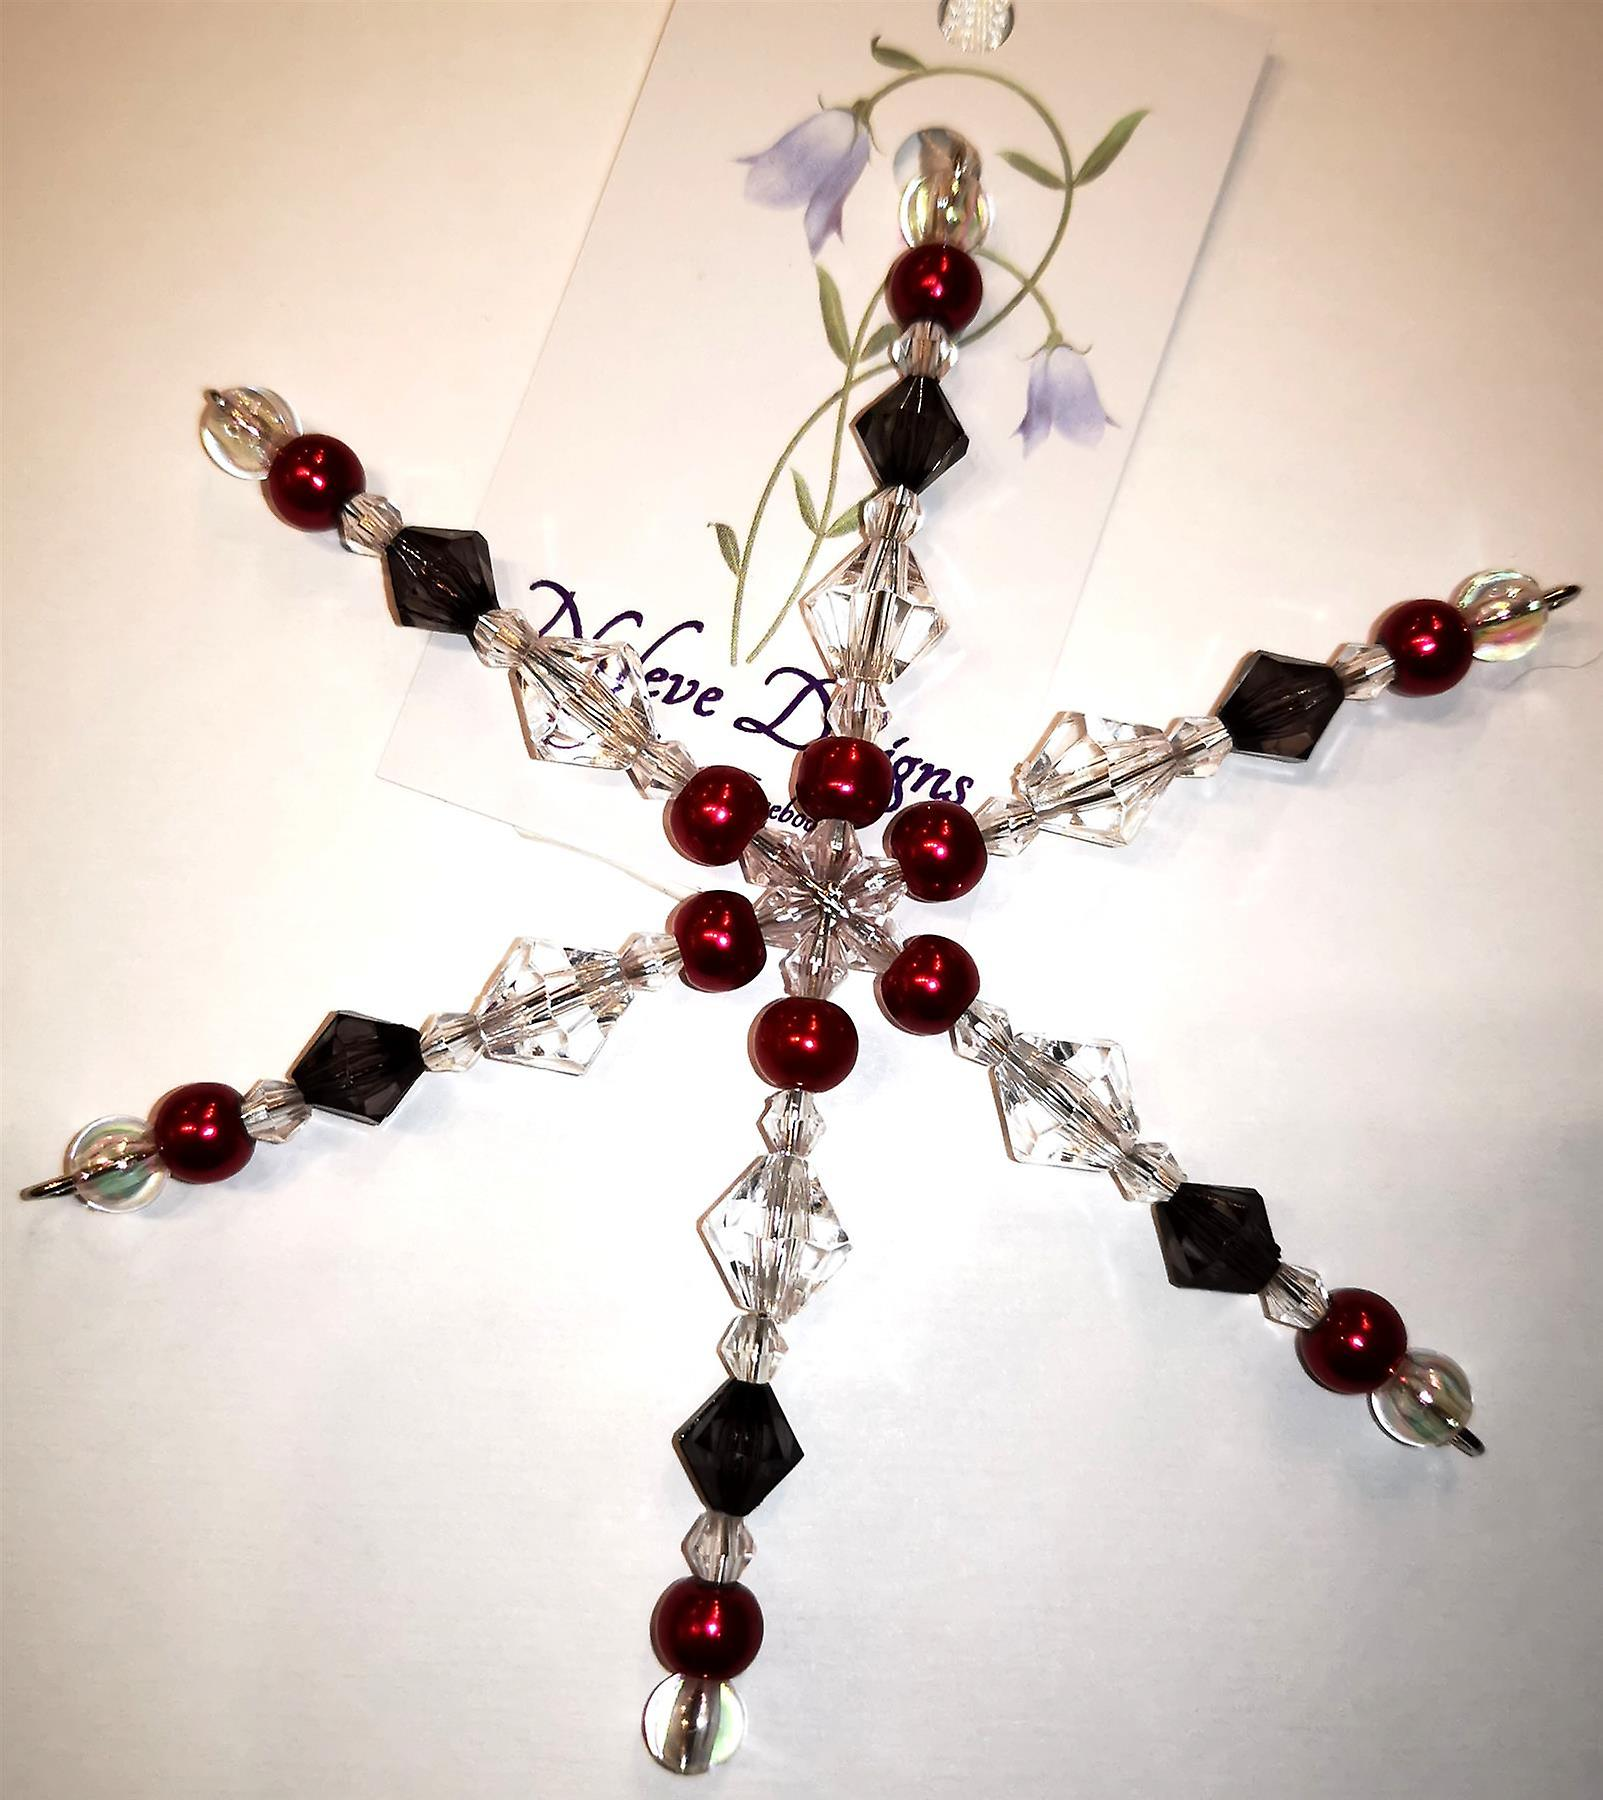 Nyleve Designs handmade hanging Snowflake decoration in Grey, Red